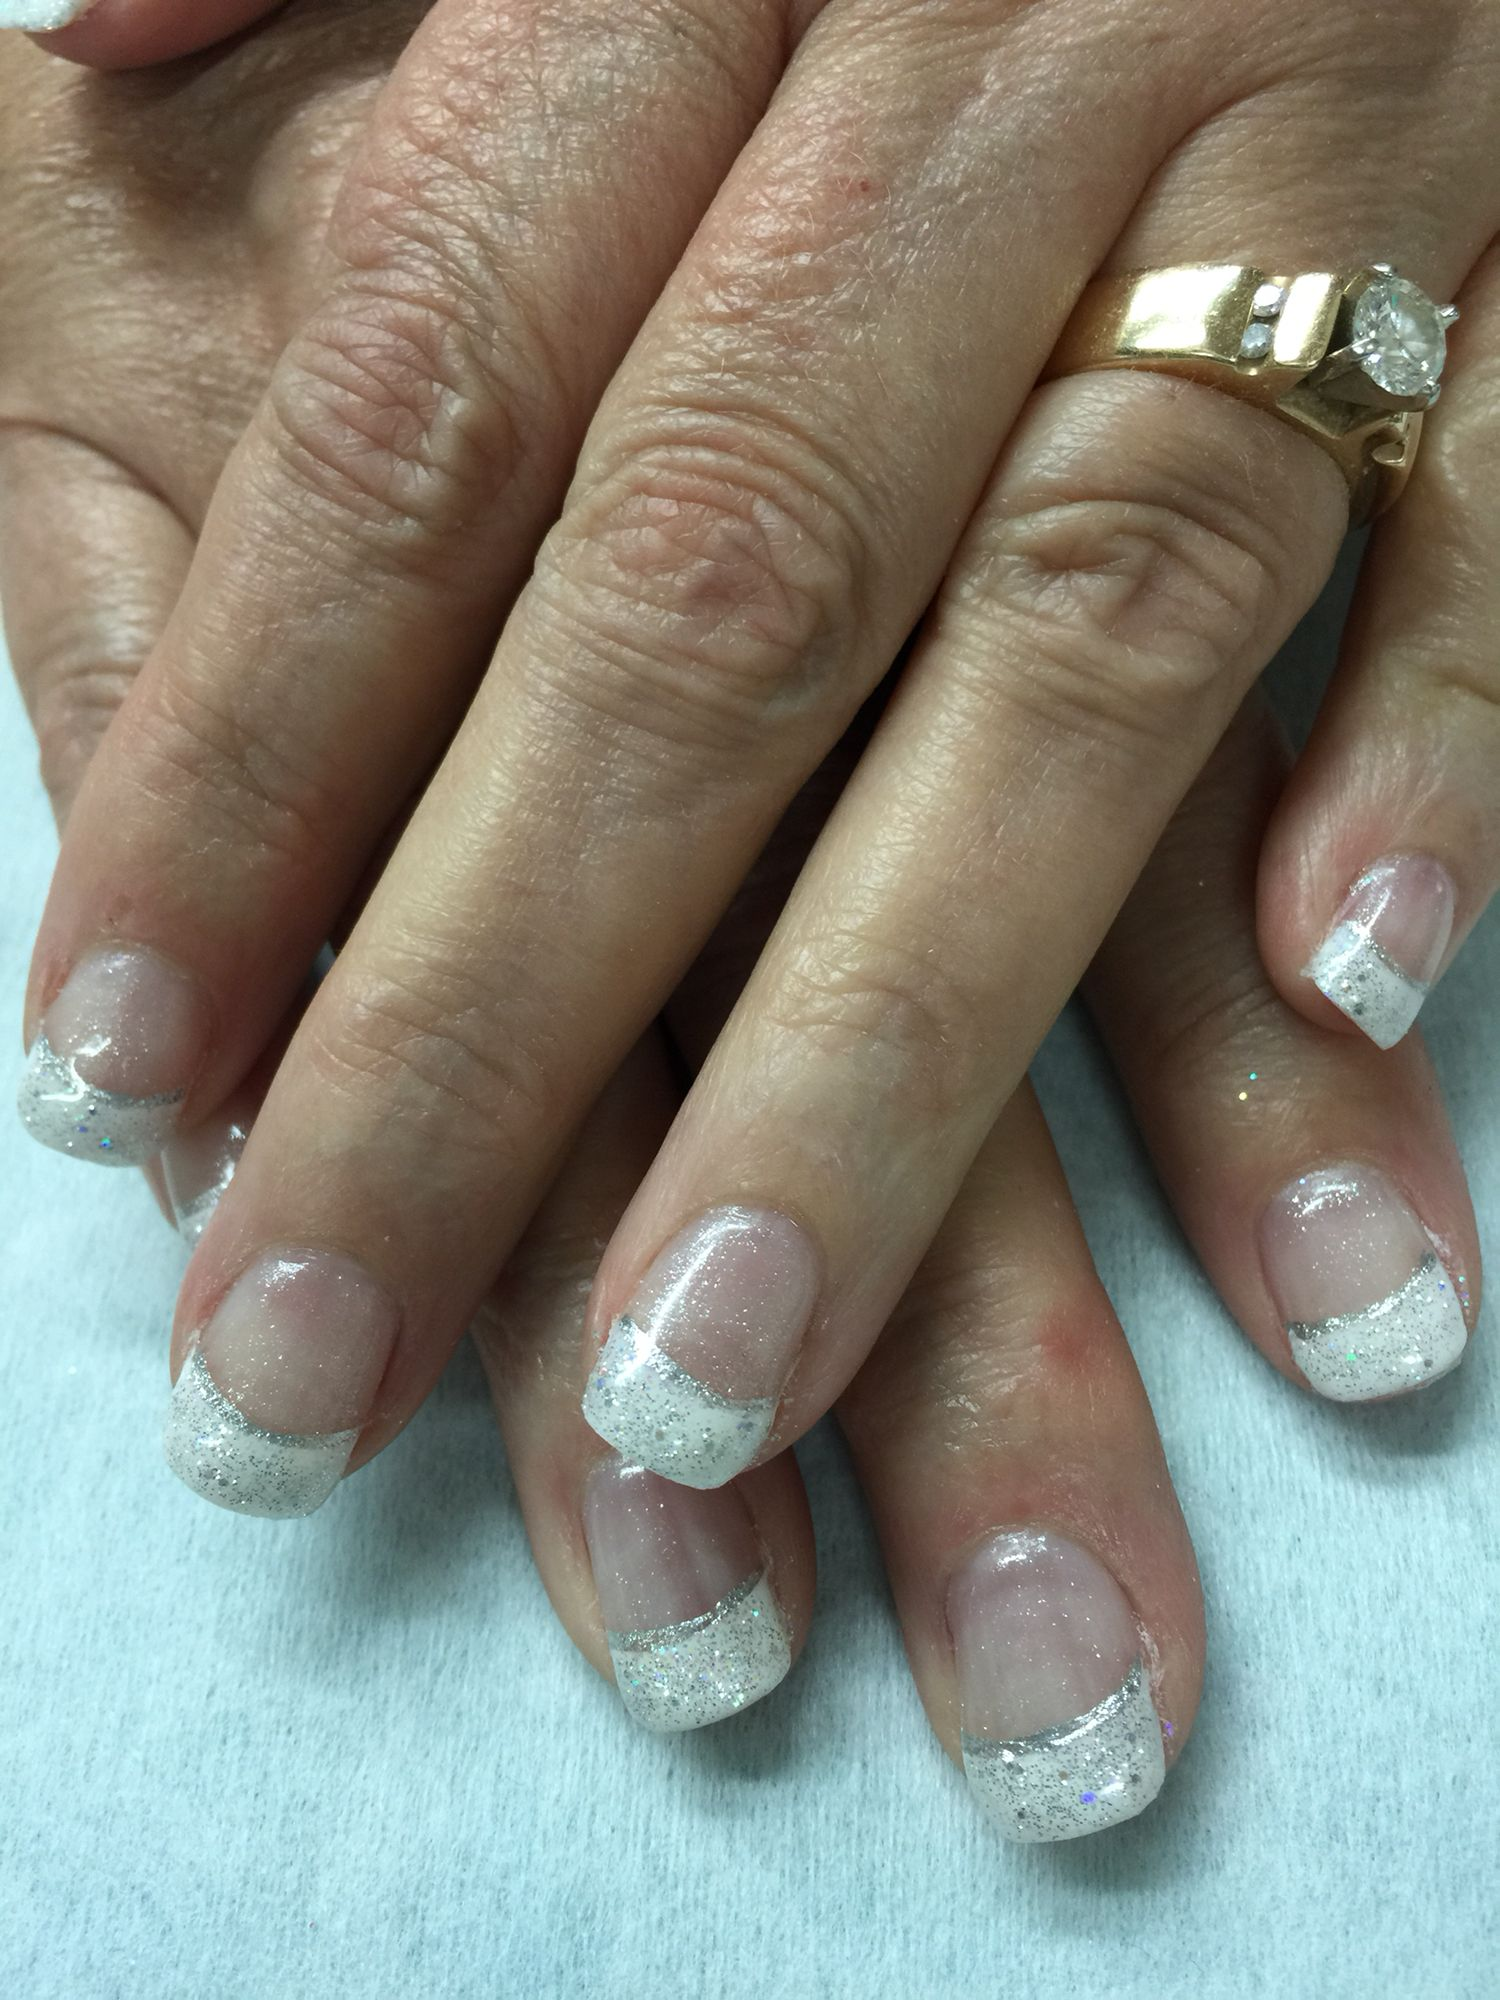 Super Sparkly Wedding Mother Of The Bride White French Gel Polish Over Non Toxic Odorless Hard